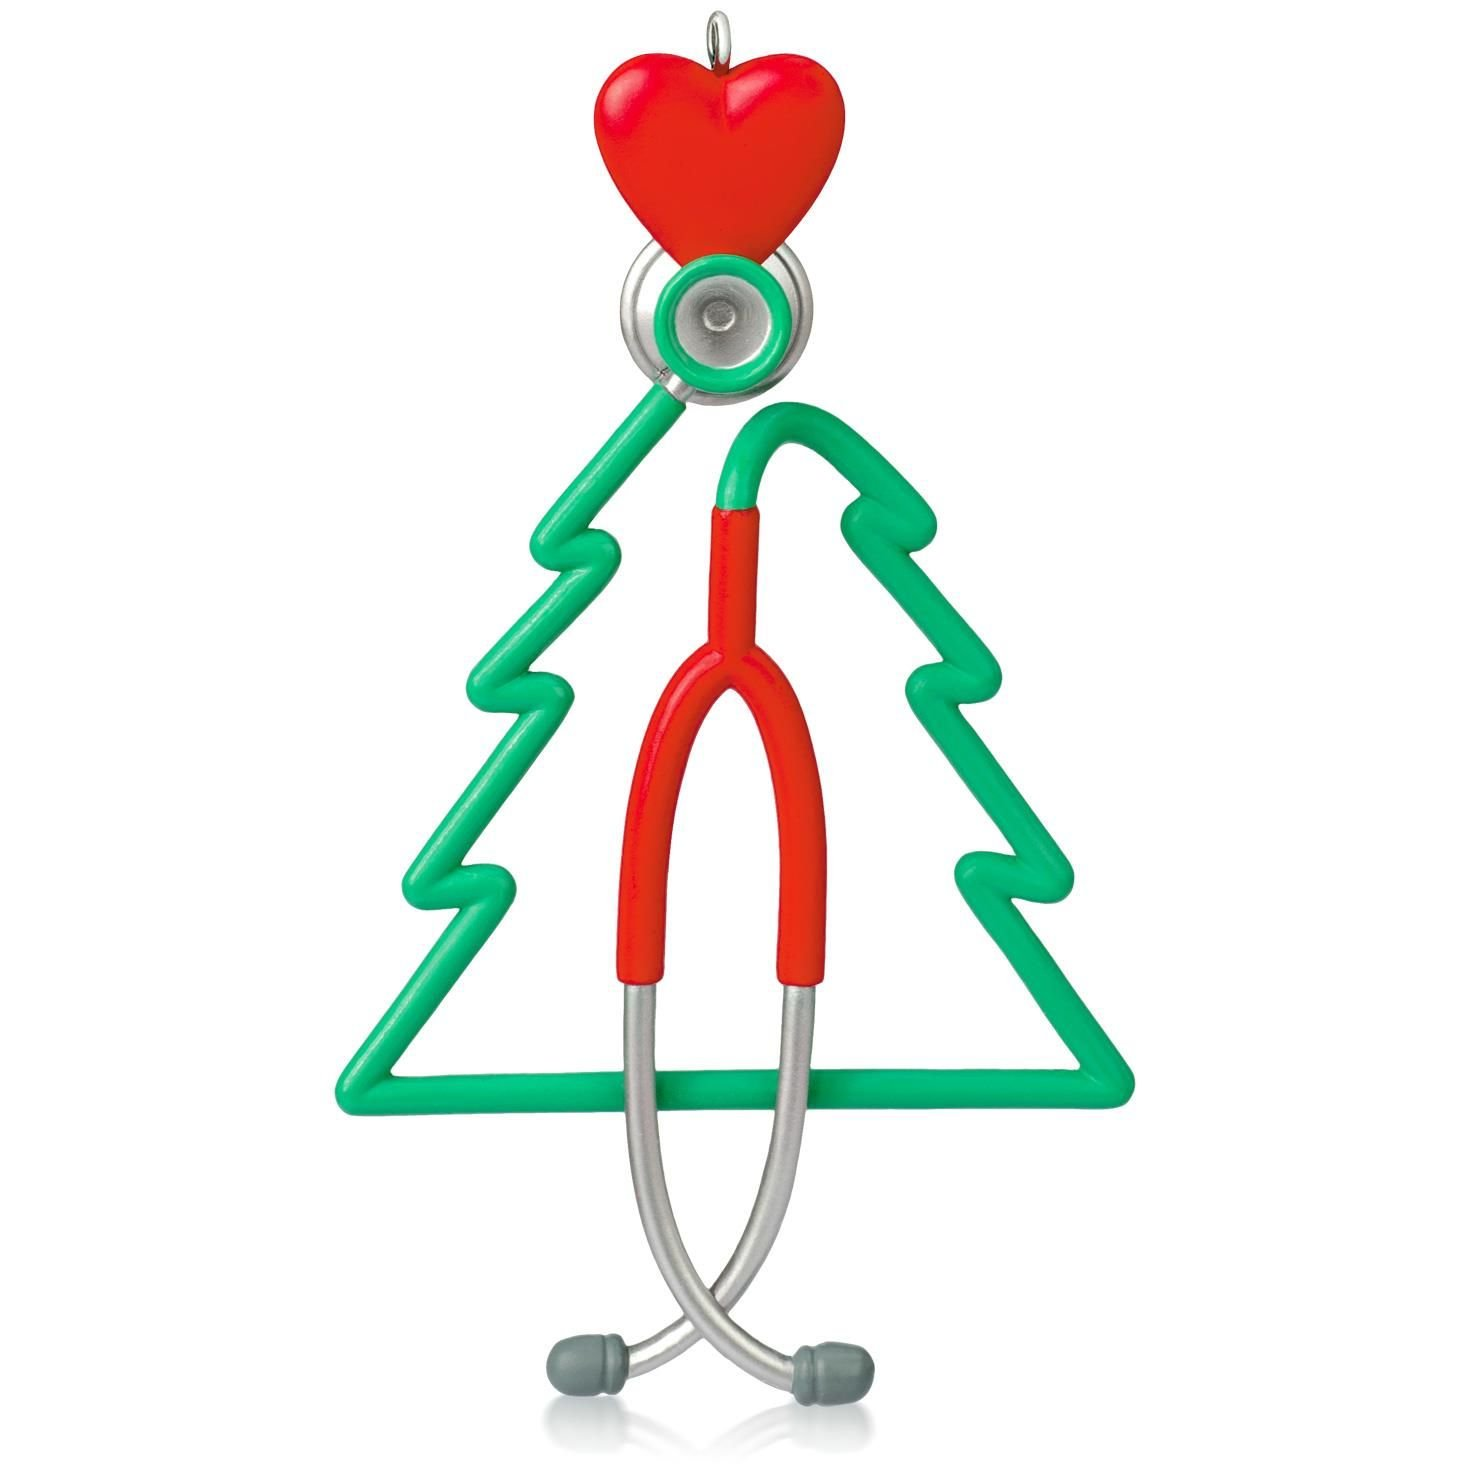 Amazon.com: A Caring Heart Stethoscope Ornament 2015 Hallmark: Home &  Kitchen